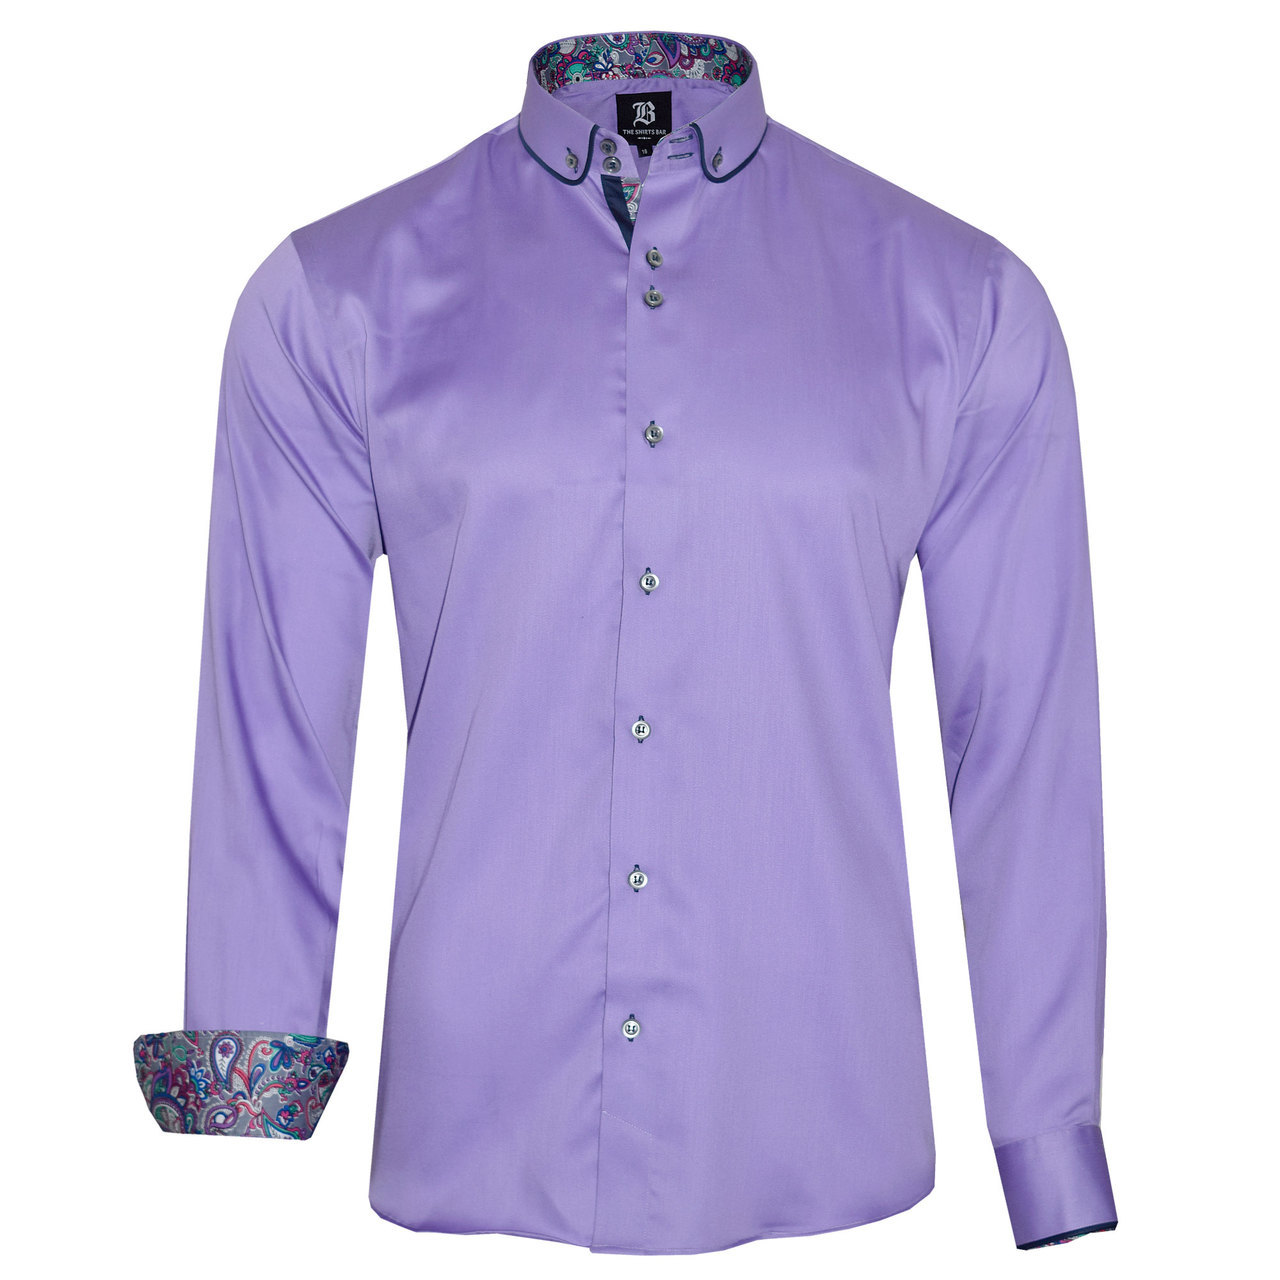 Men 39 s light purple shirt Light purple dress shirt men